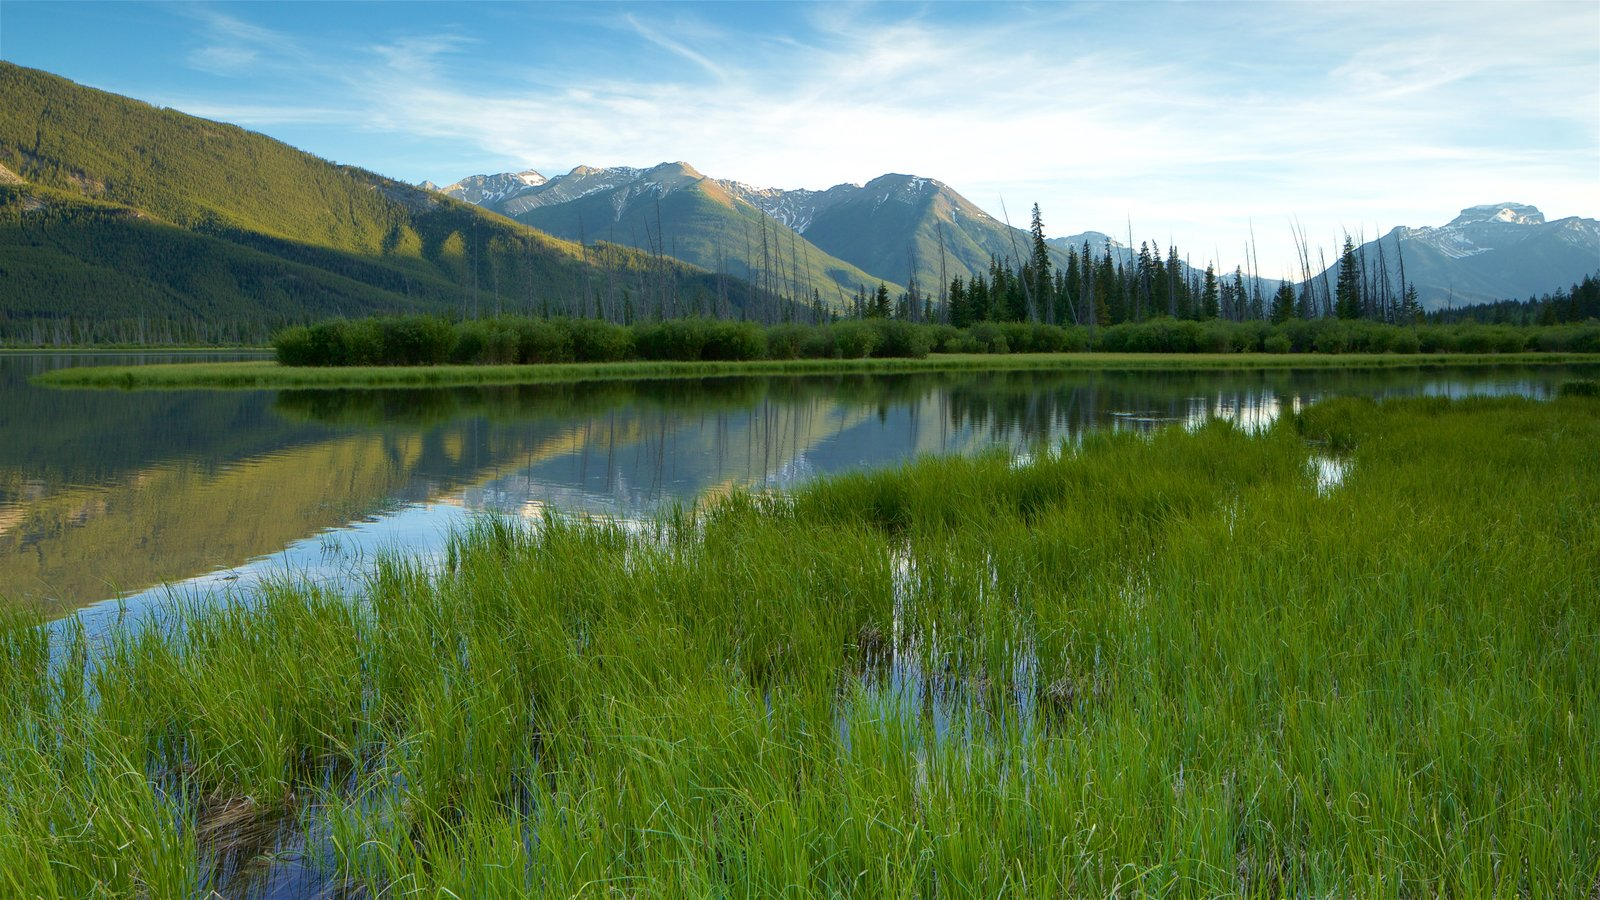 Banff showing tranquil scenes, wetlands and landscape views